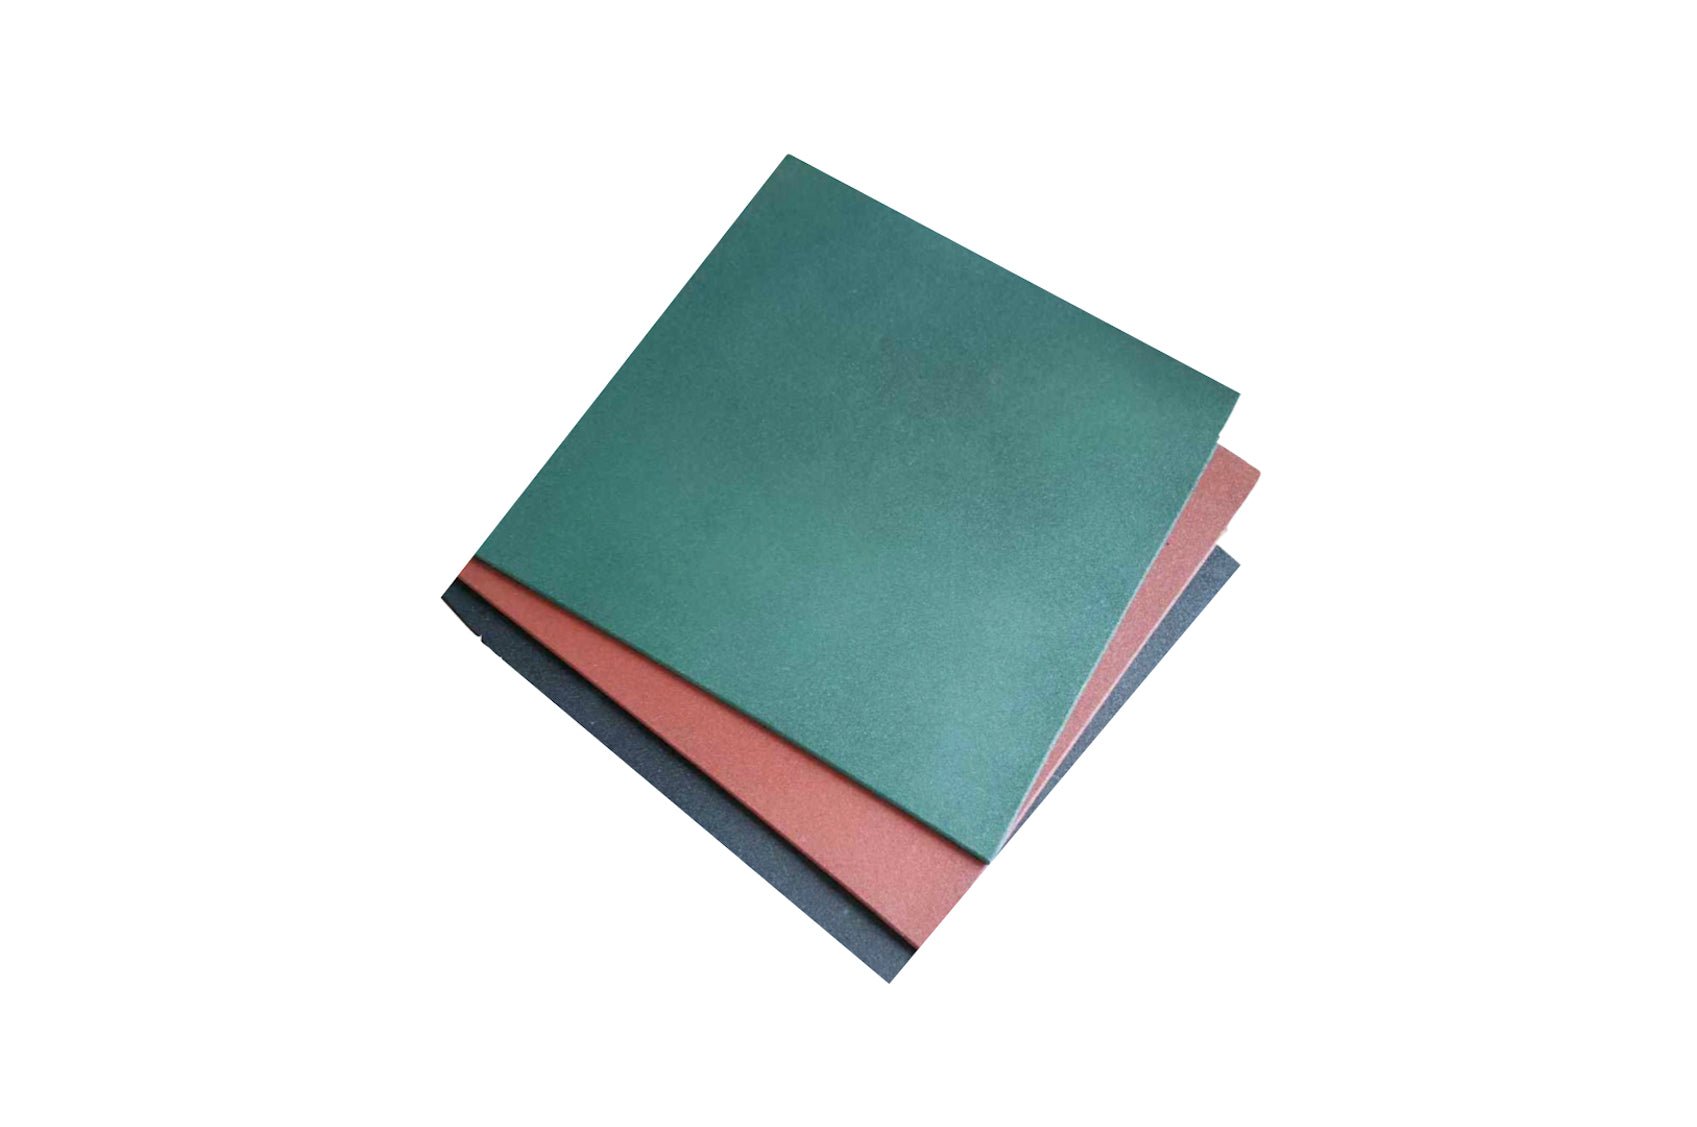 Green Rubber Flooring Tile